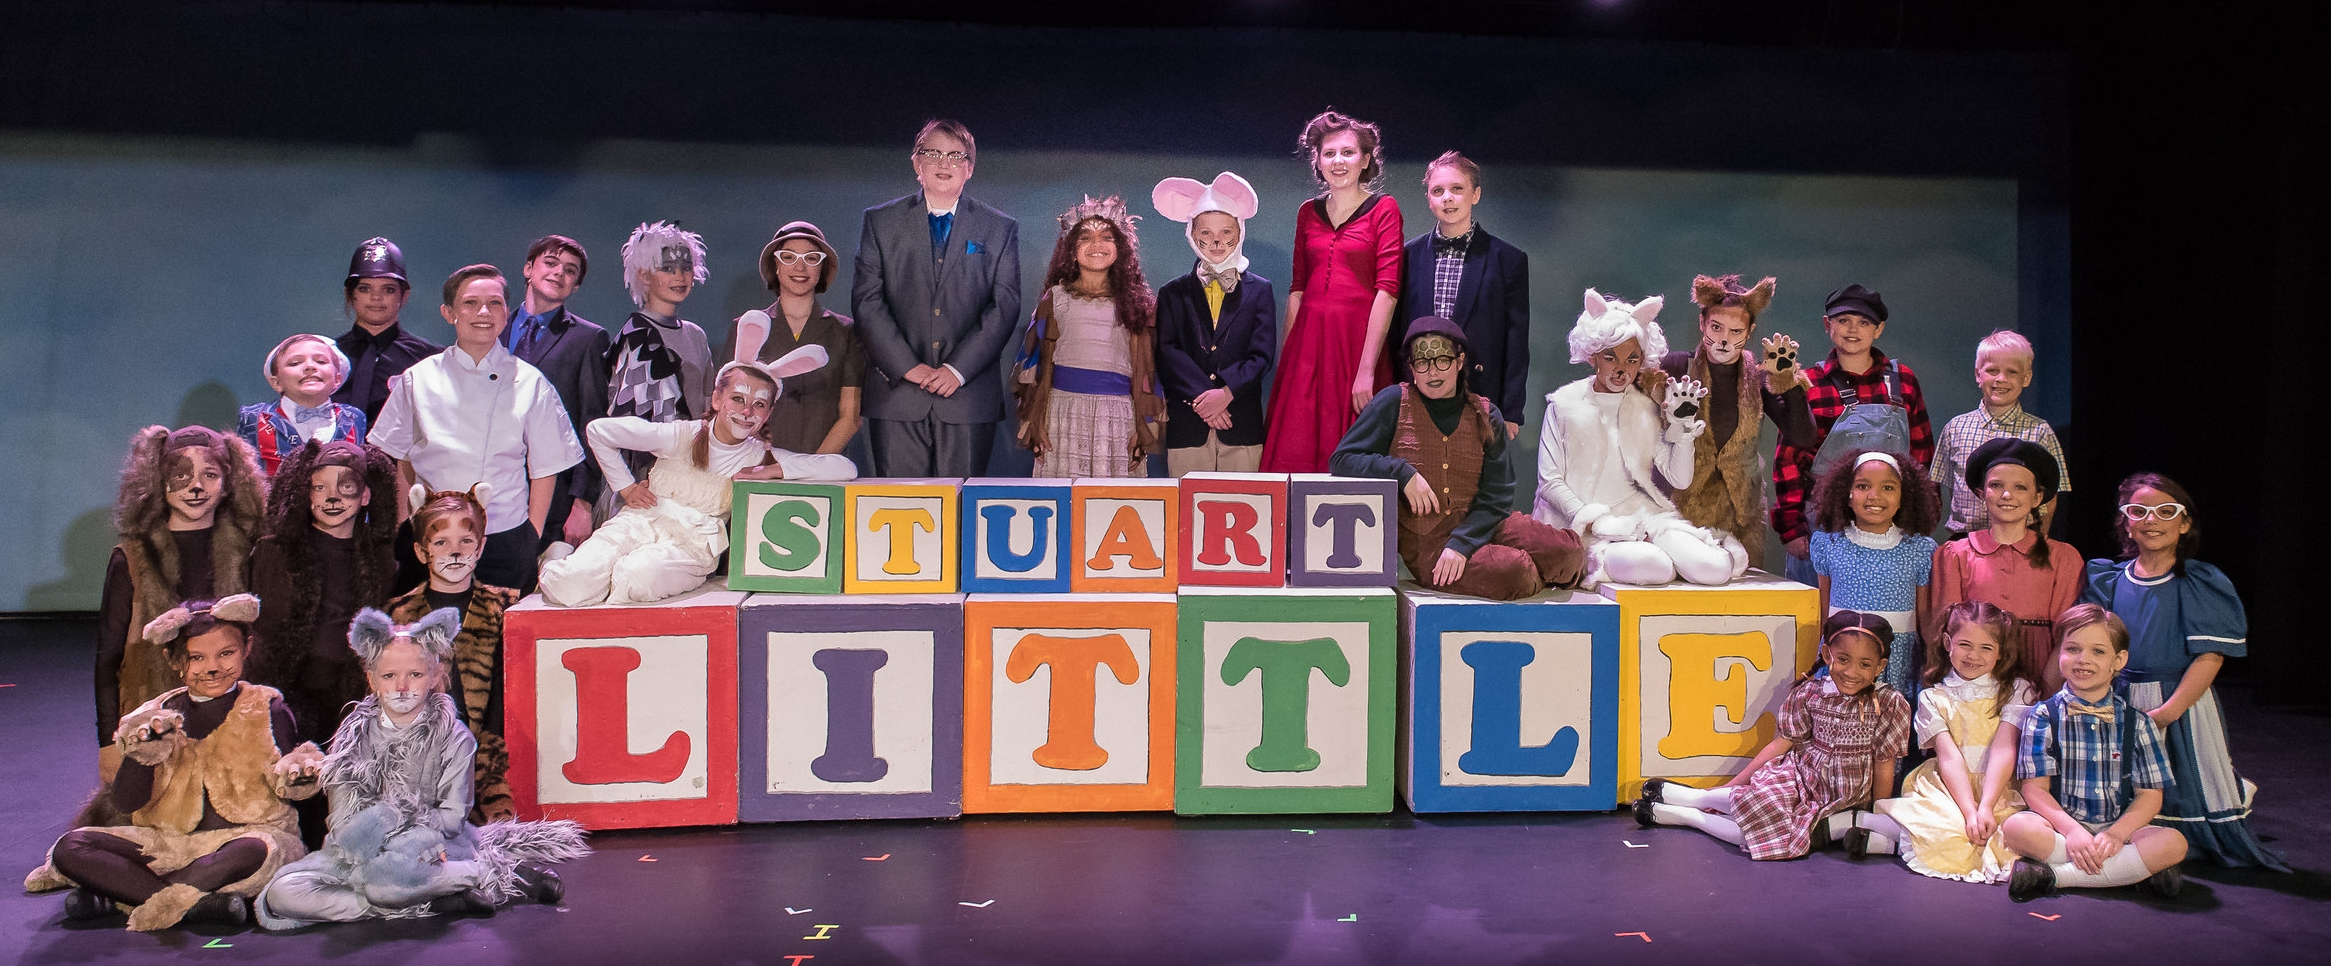 Stuart Little Cast Photo 2018.jpg